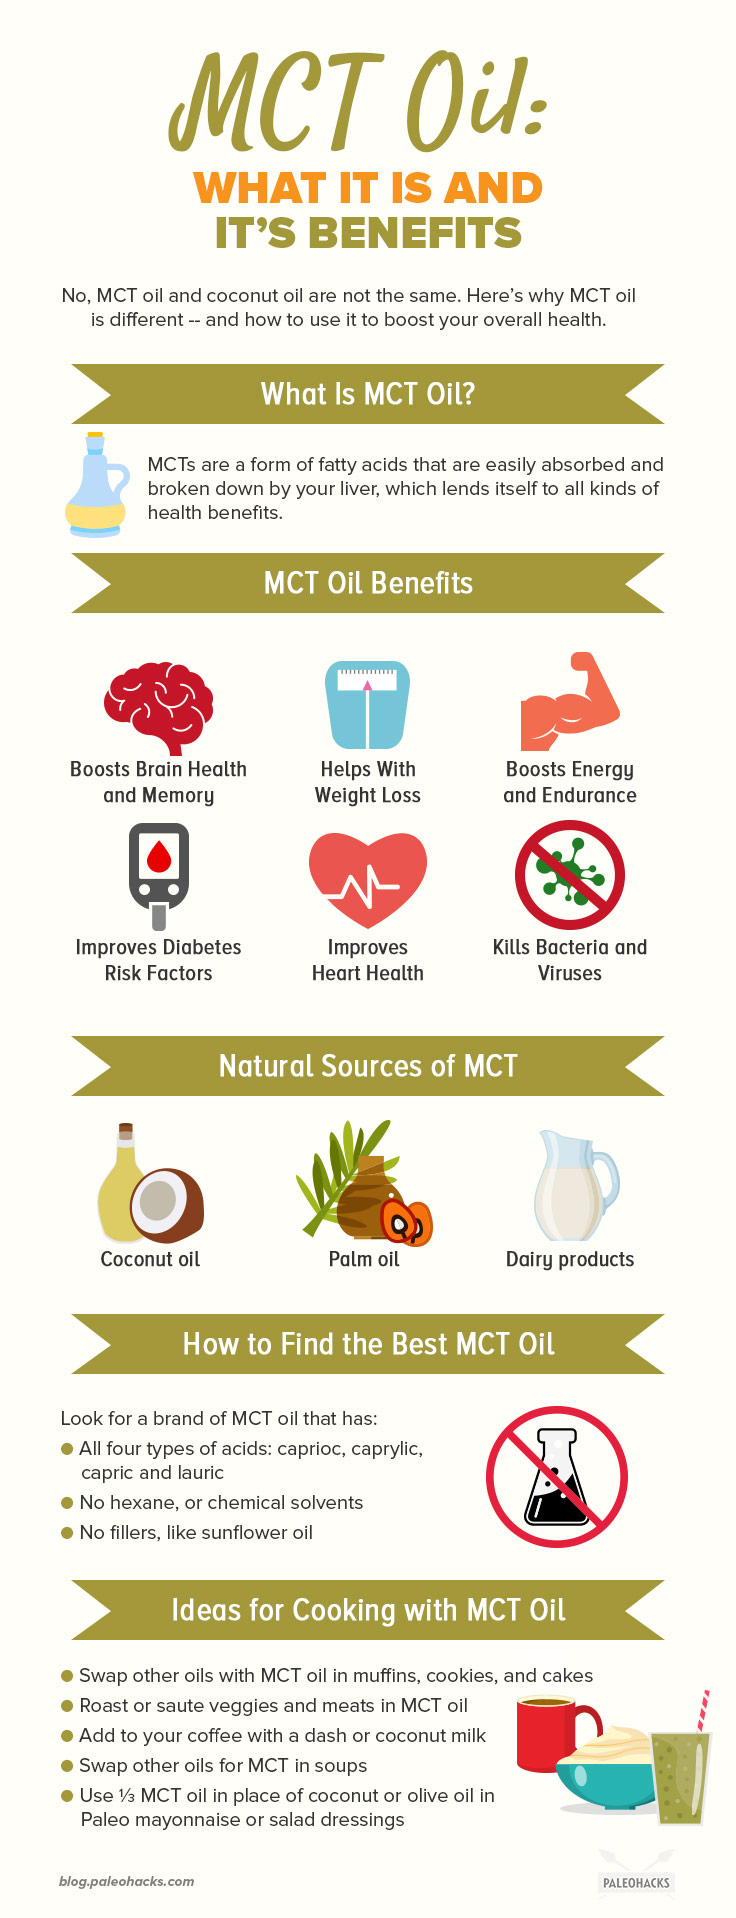 MCT Oil what it is and its benefits